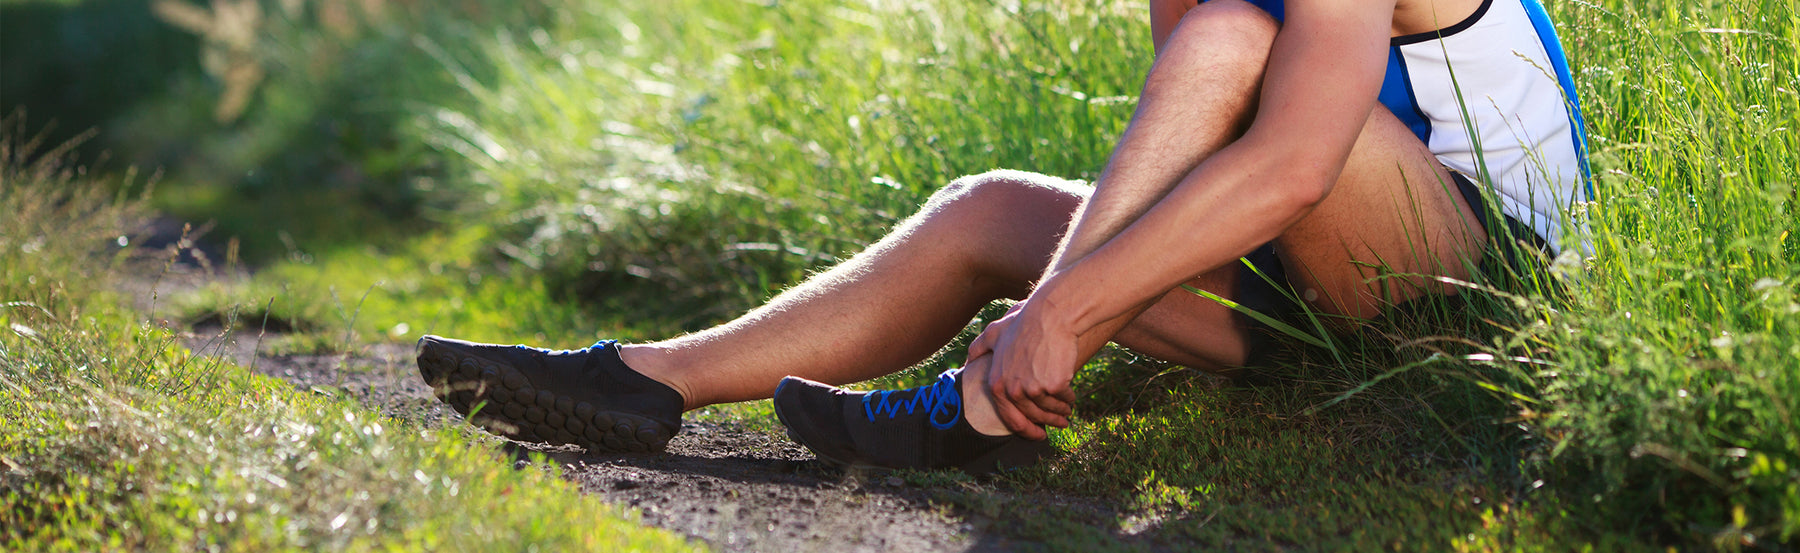 Seven Ways to Deal with a Sprained Ankle